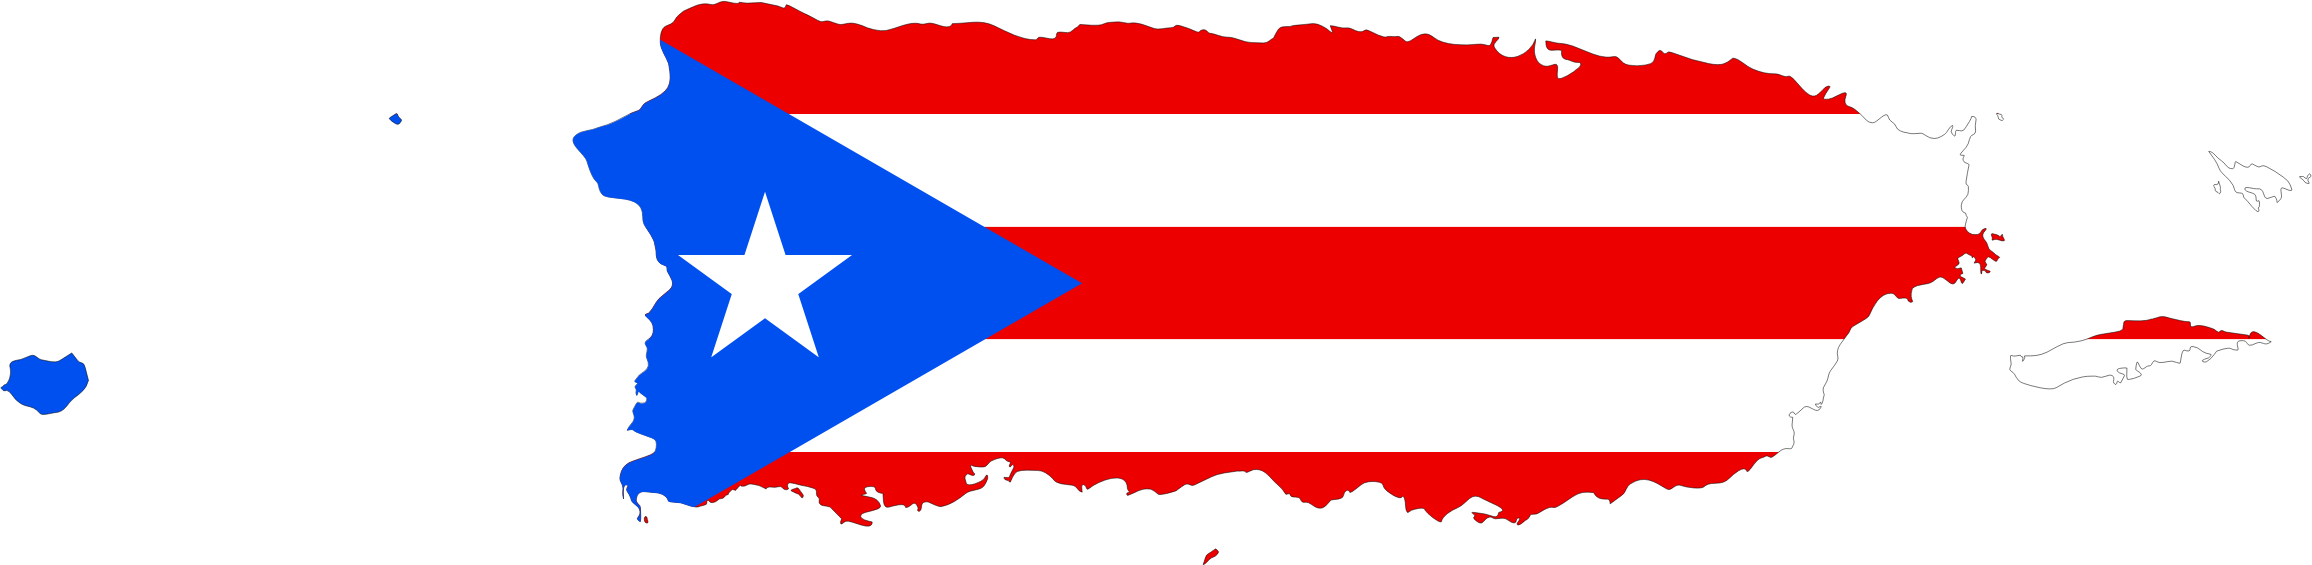 Clipart Puerto Rico Map Flag - Puerto rico map